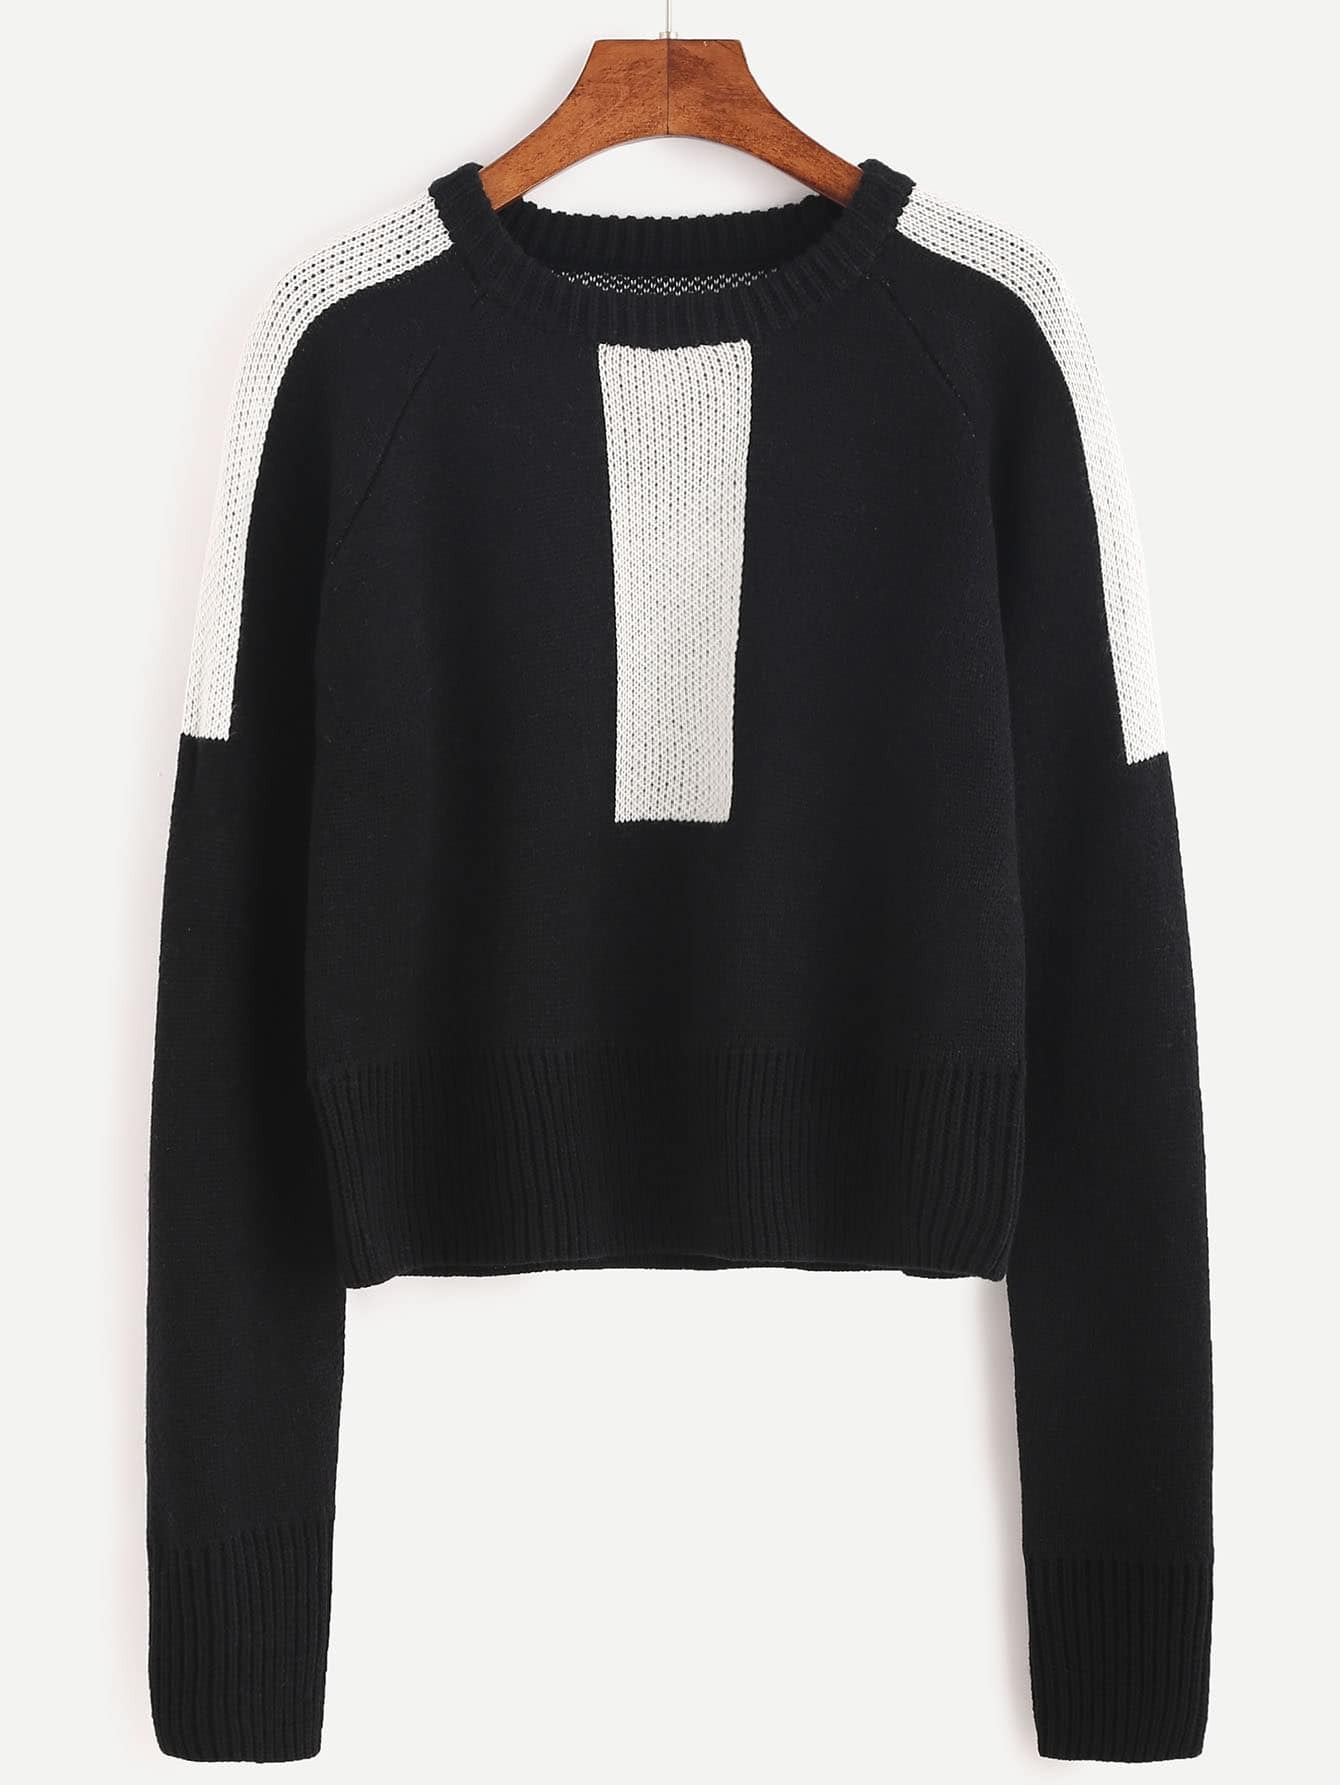 Black Color Block Raglan Sleeve Sweater sweater160920454